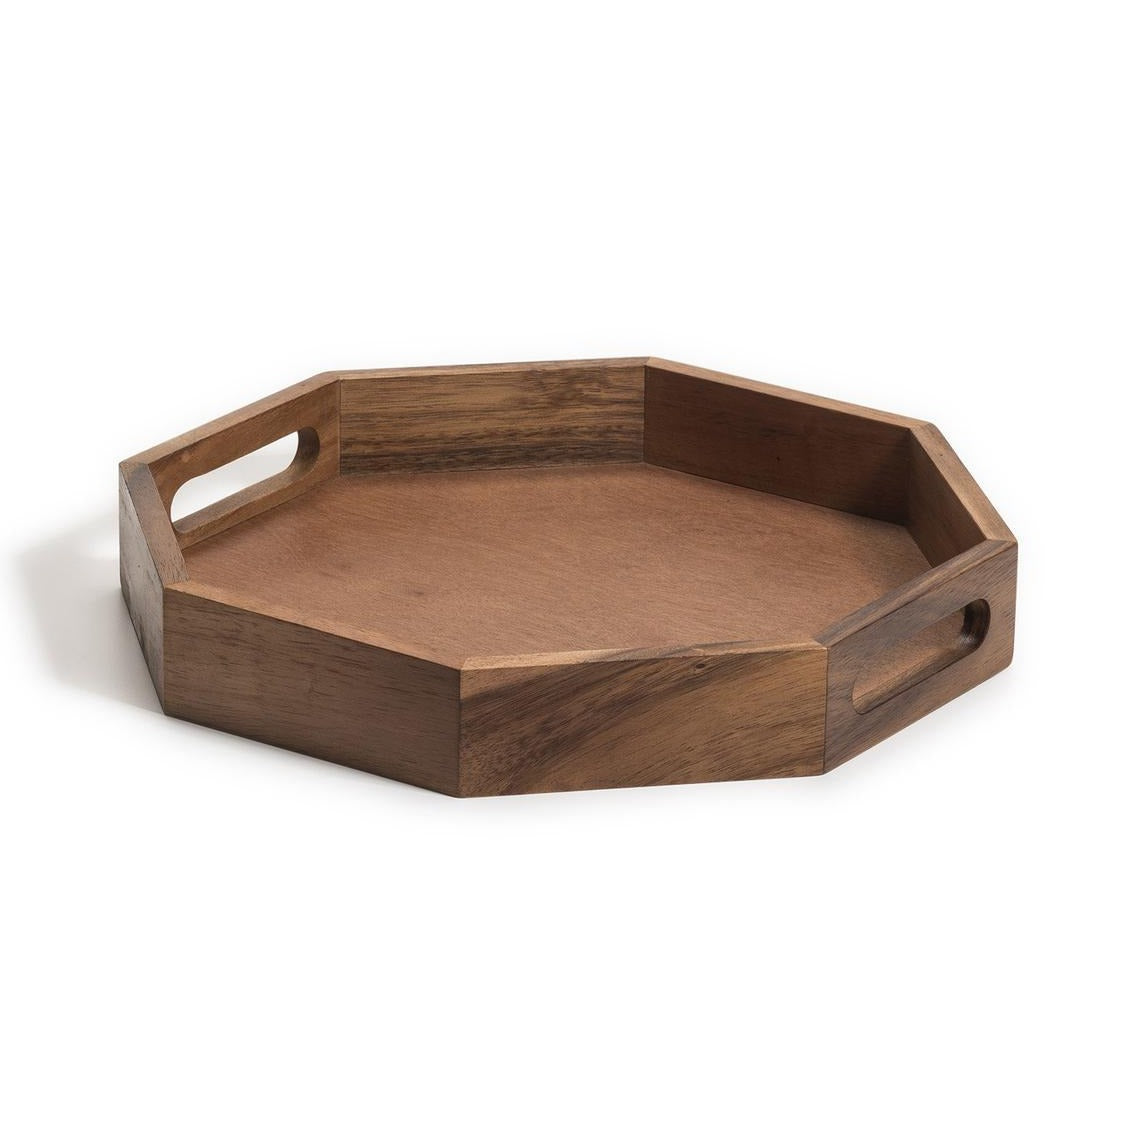 17 inch octagon acacia wood serving tray with handles